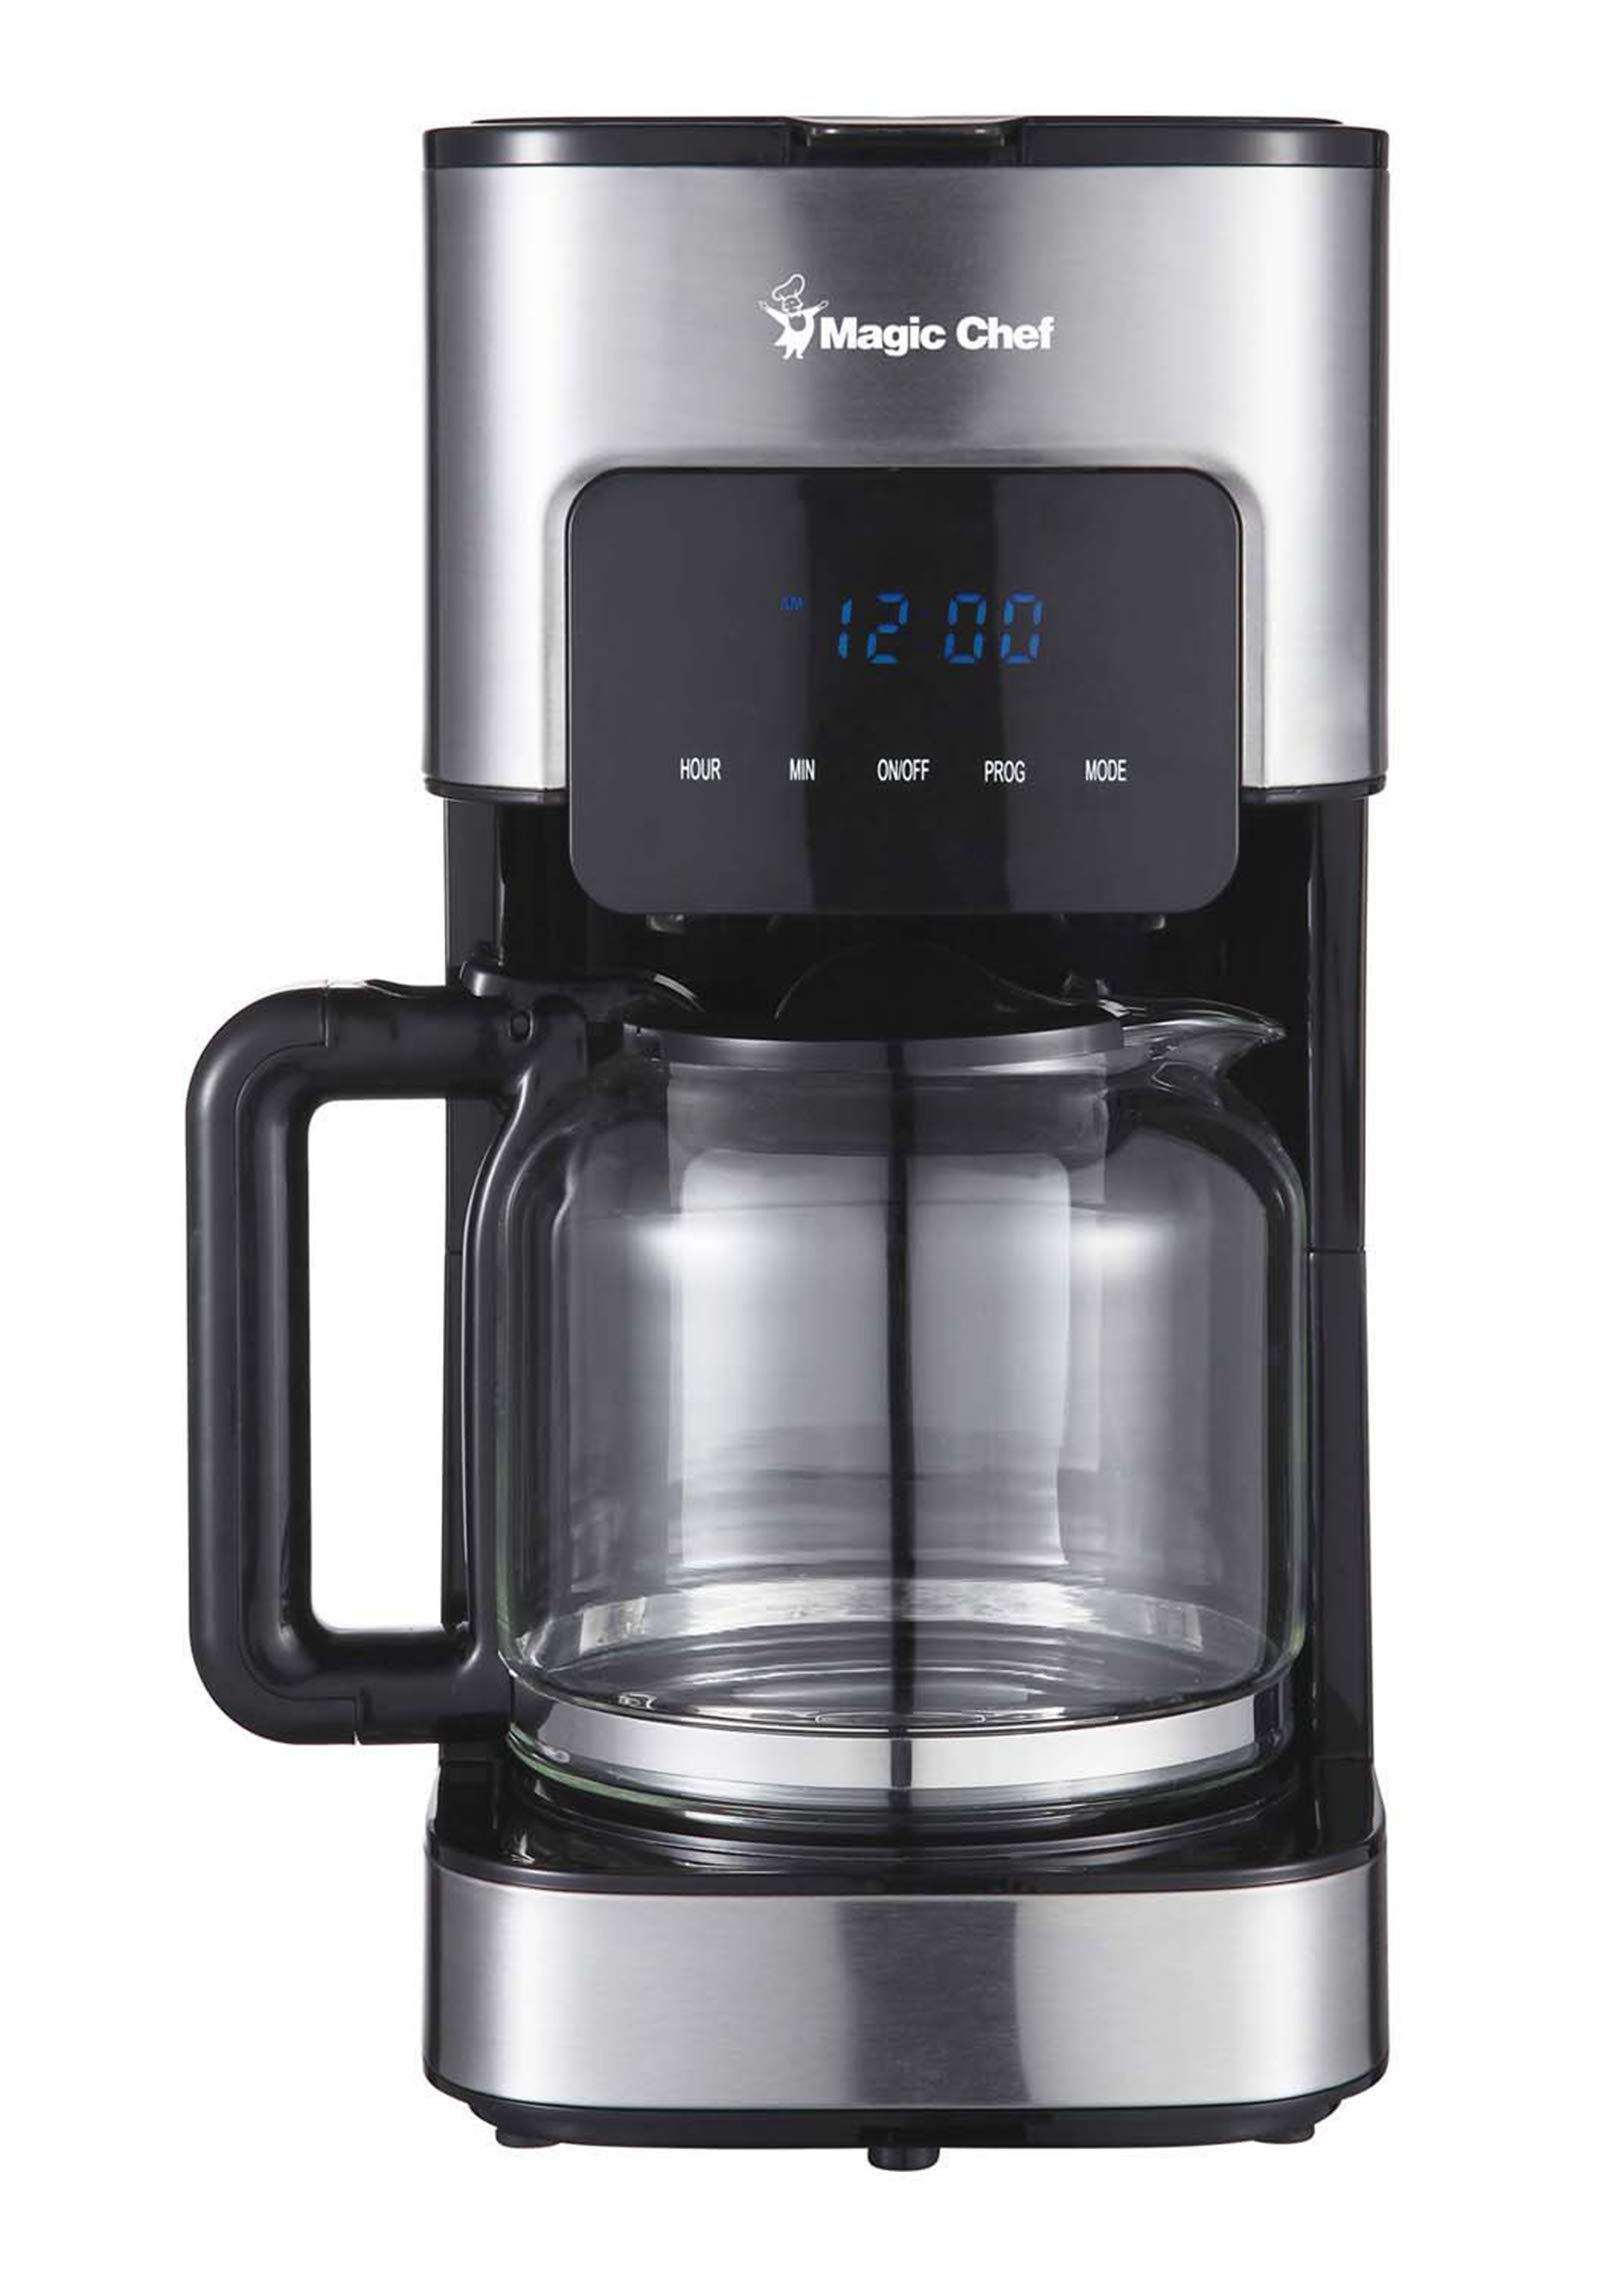 Magic Chef MCSCM12SS Coffee Maker, 8.6X 6.6X 12.9, Stainless Steel